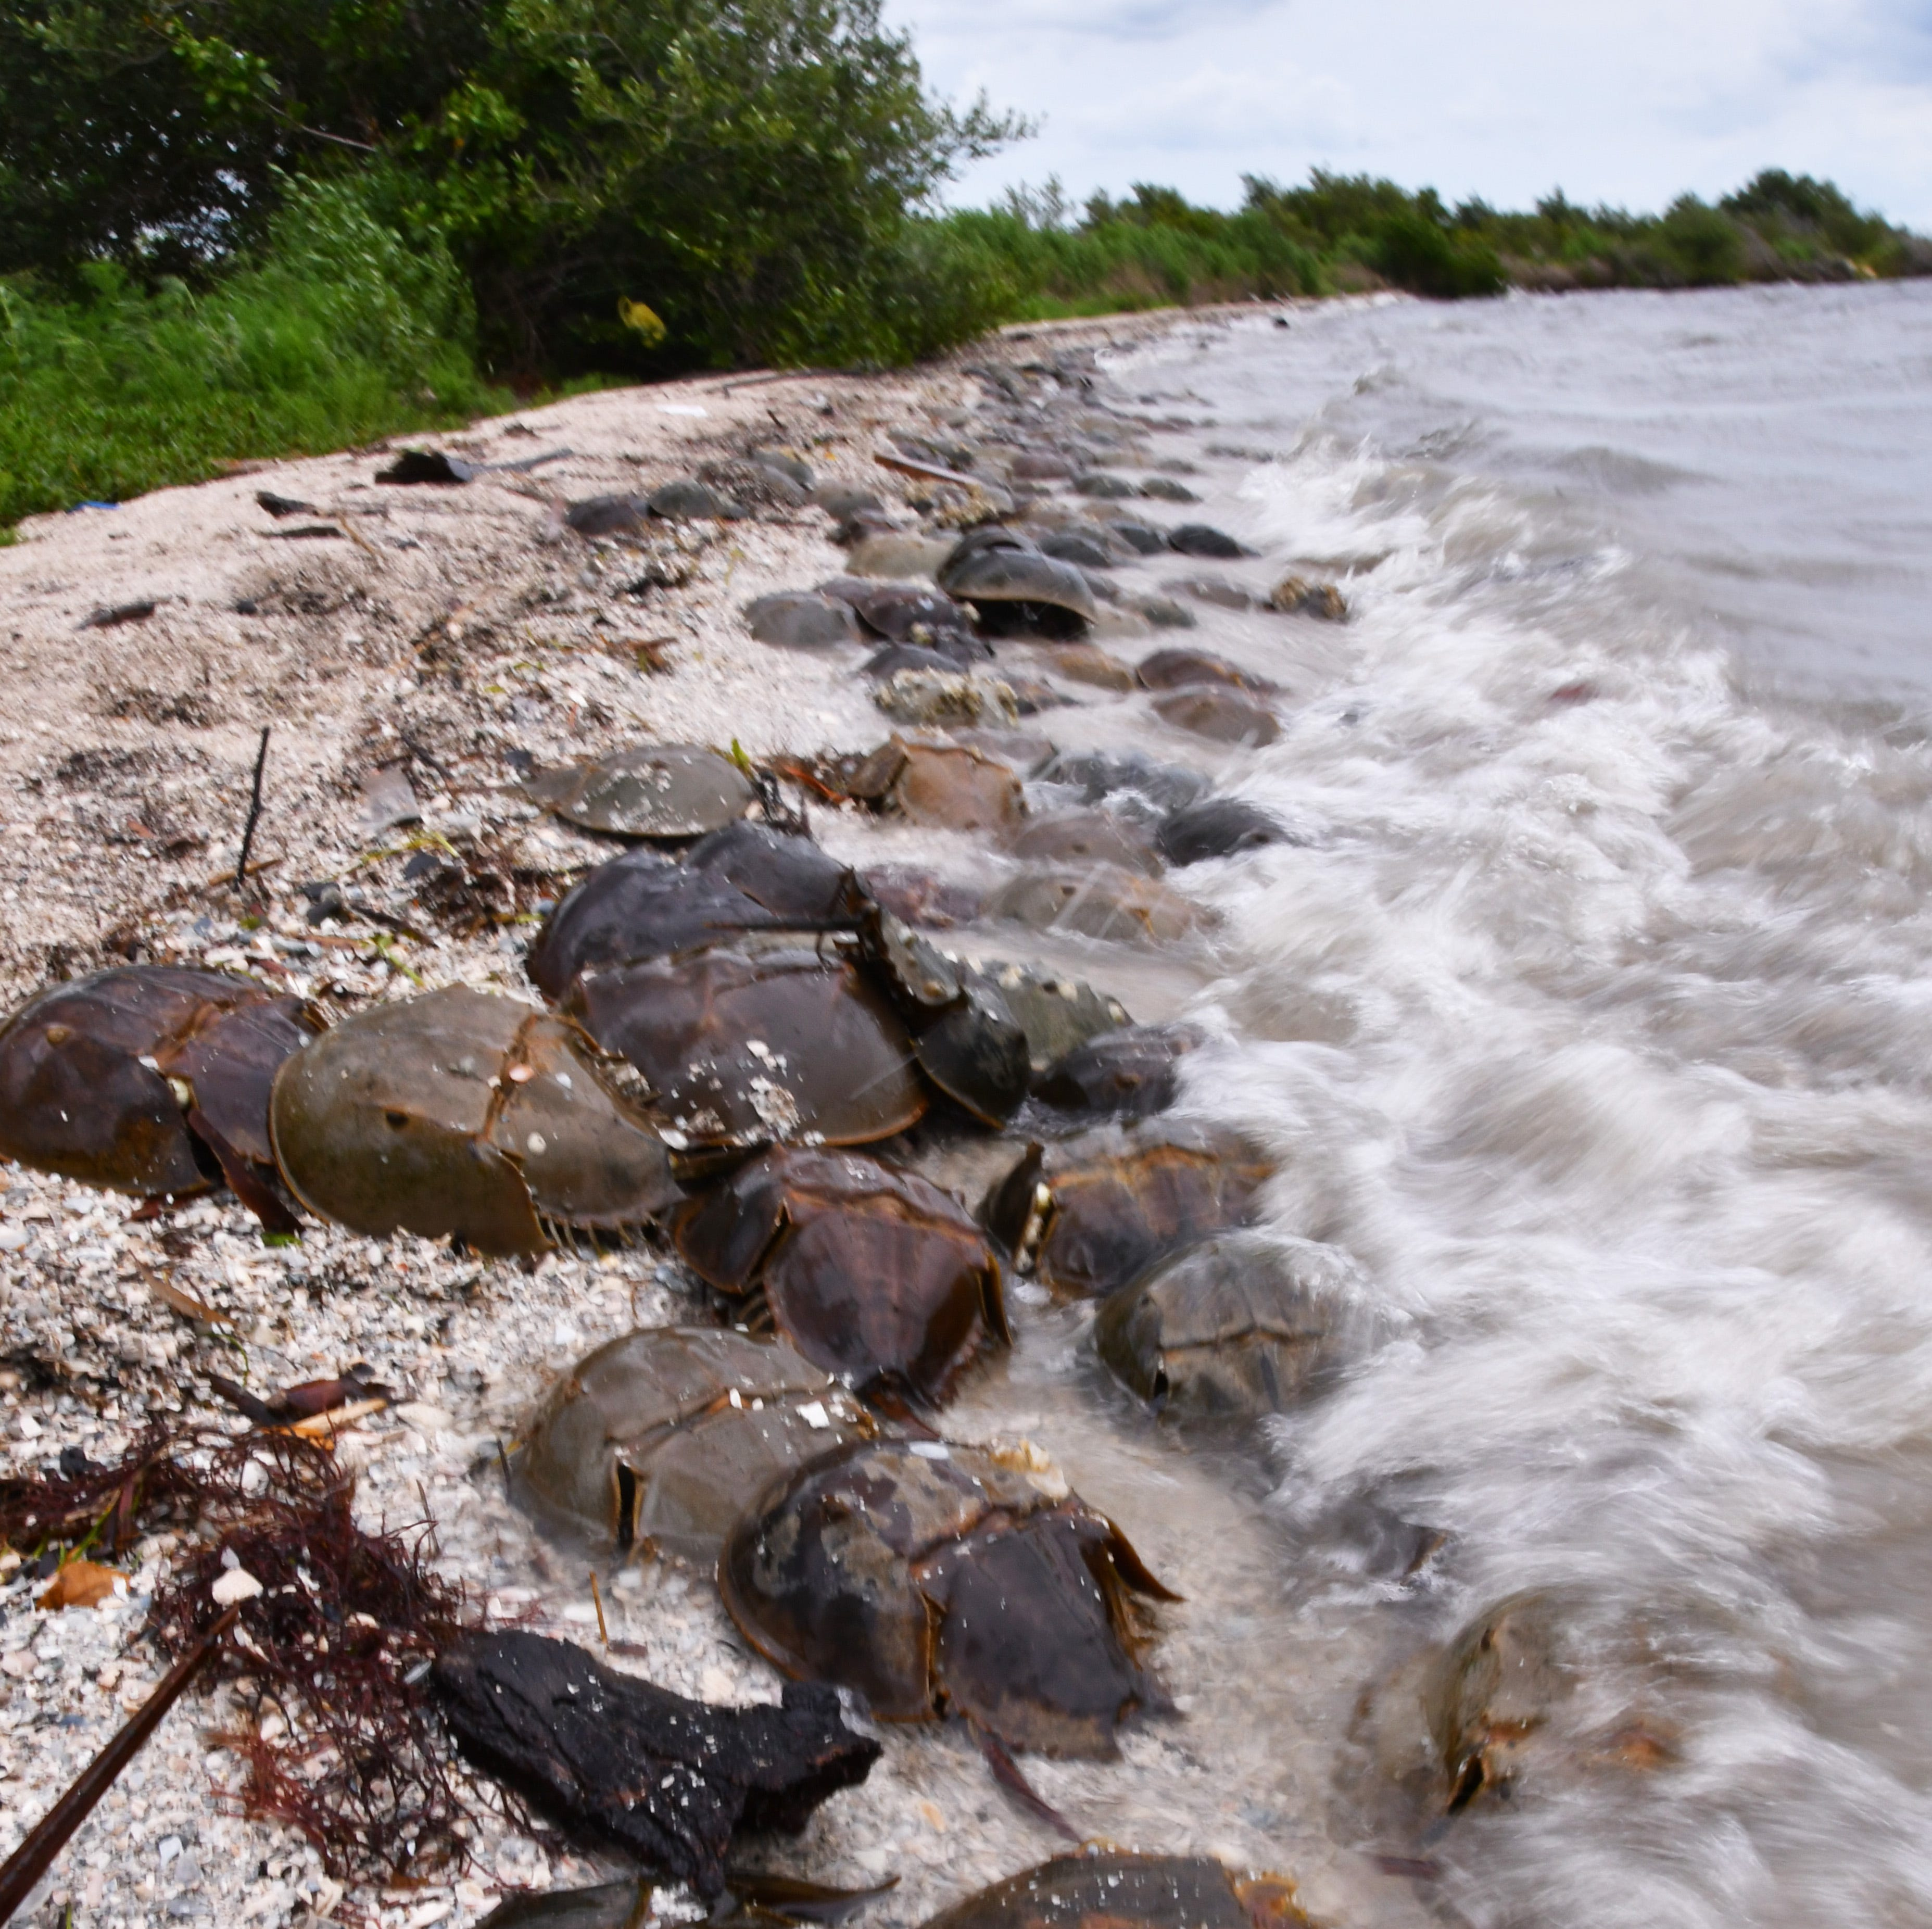 Thousands of horseshoe crabs spawn in Titusville